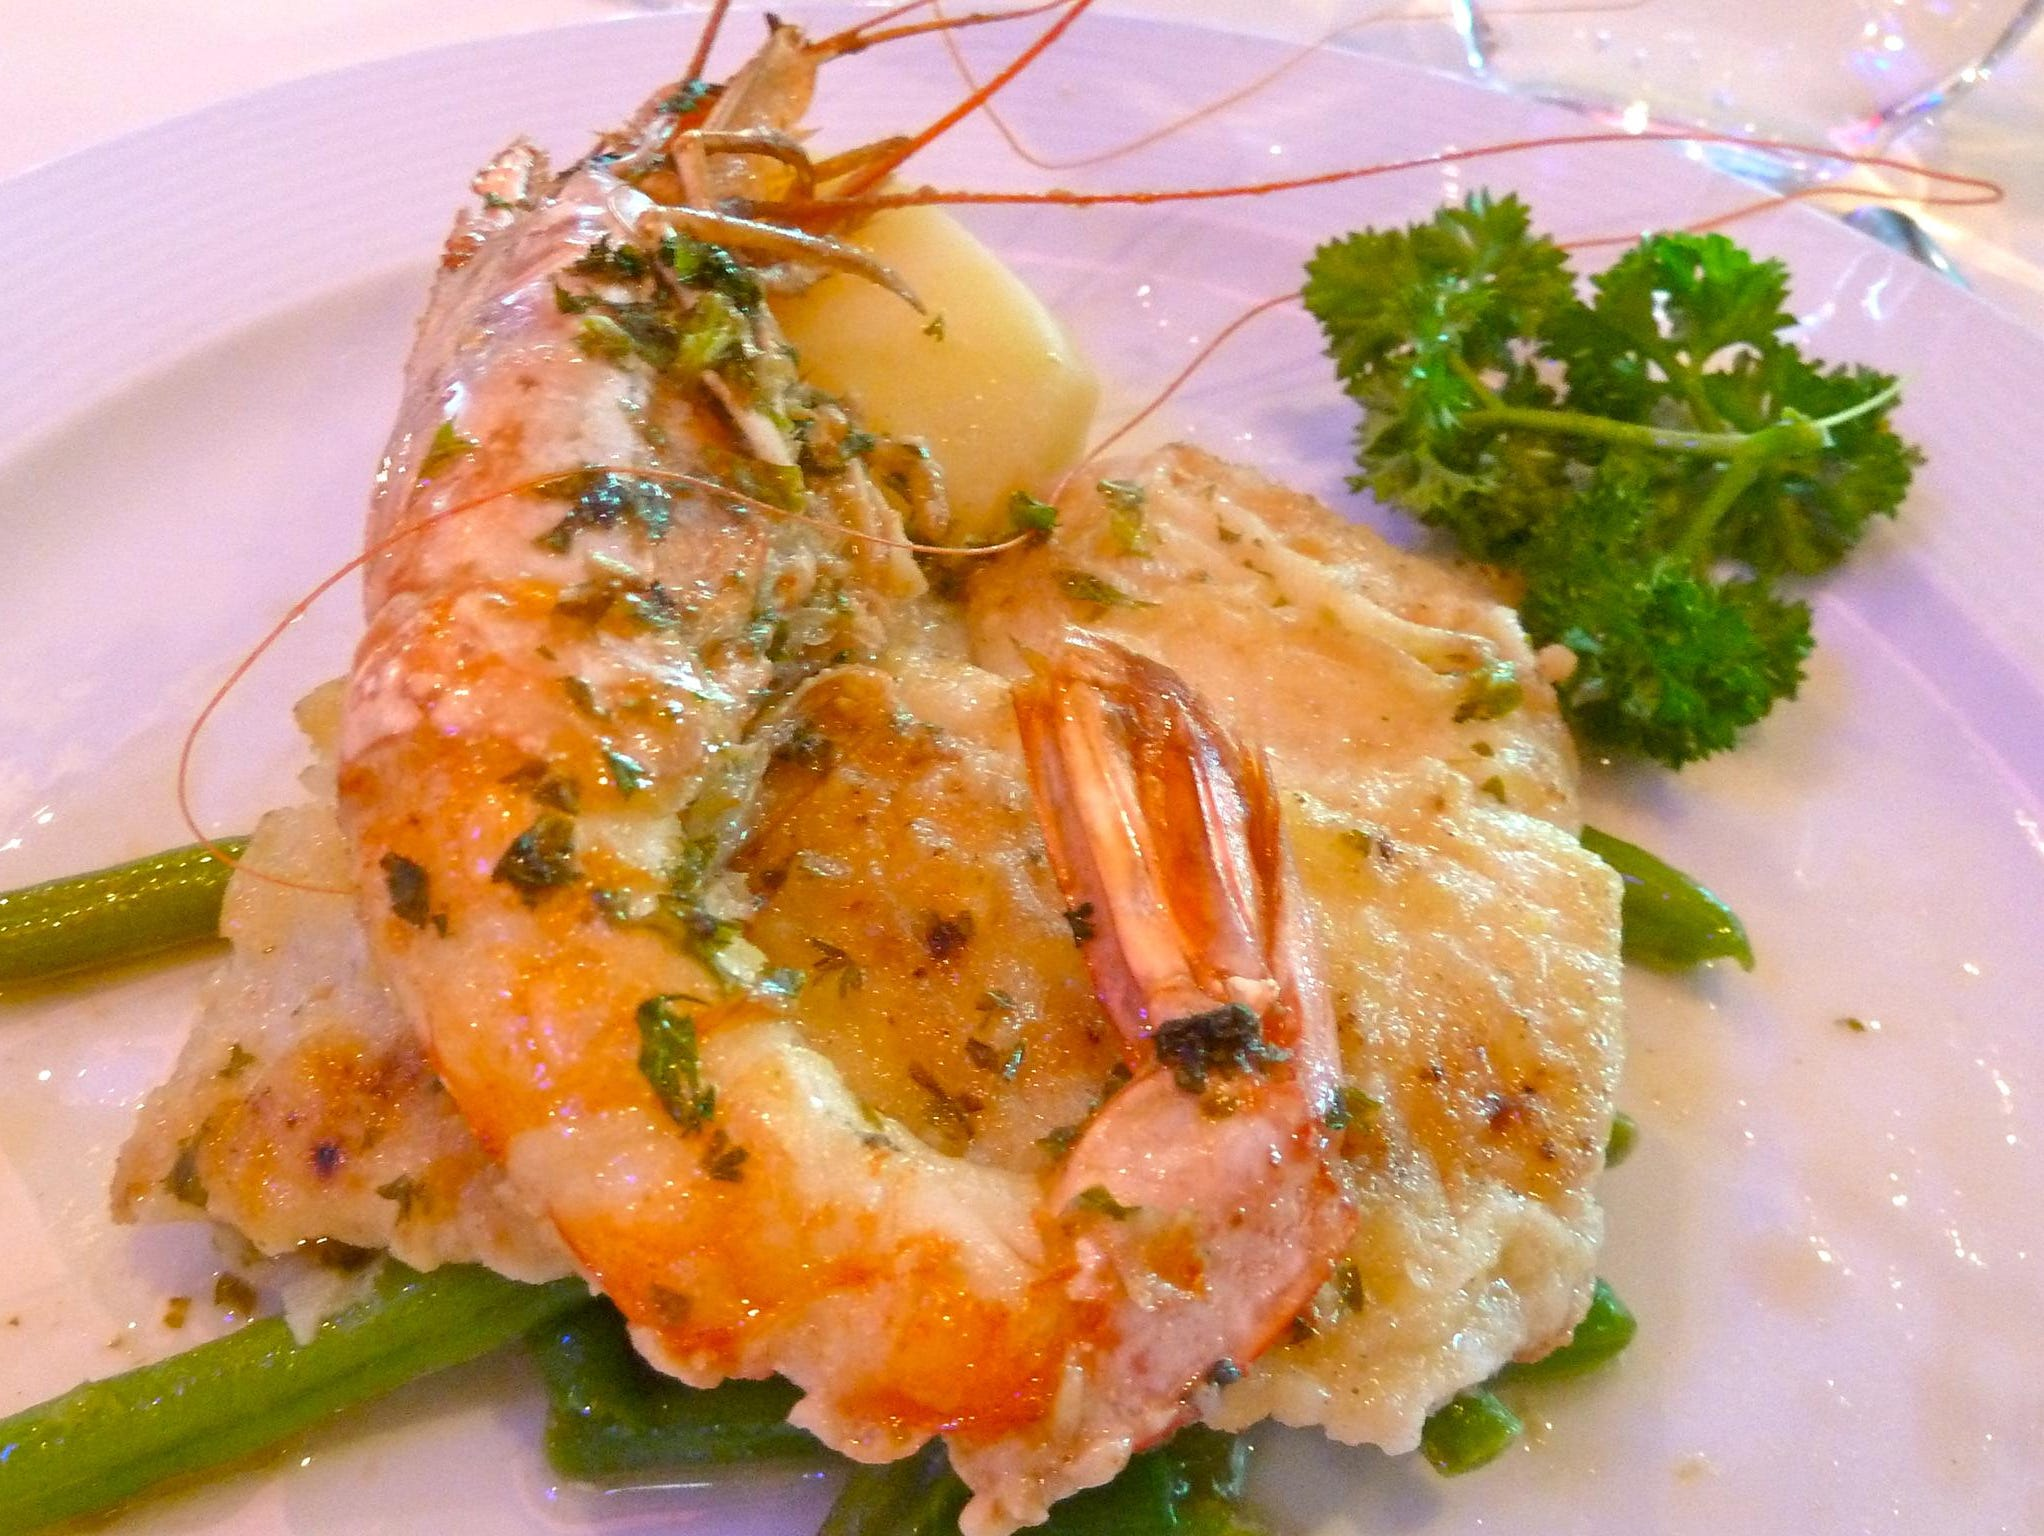 Costa ships are known for their fresh fish and seafood entrées, such as this prawn-topped tilapia.